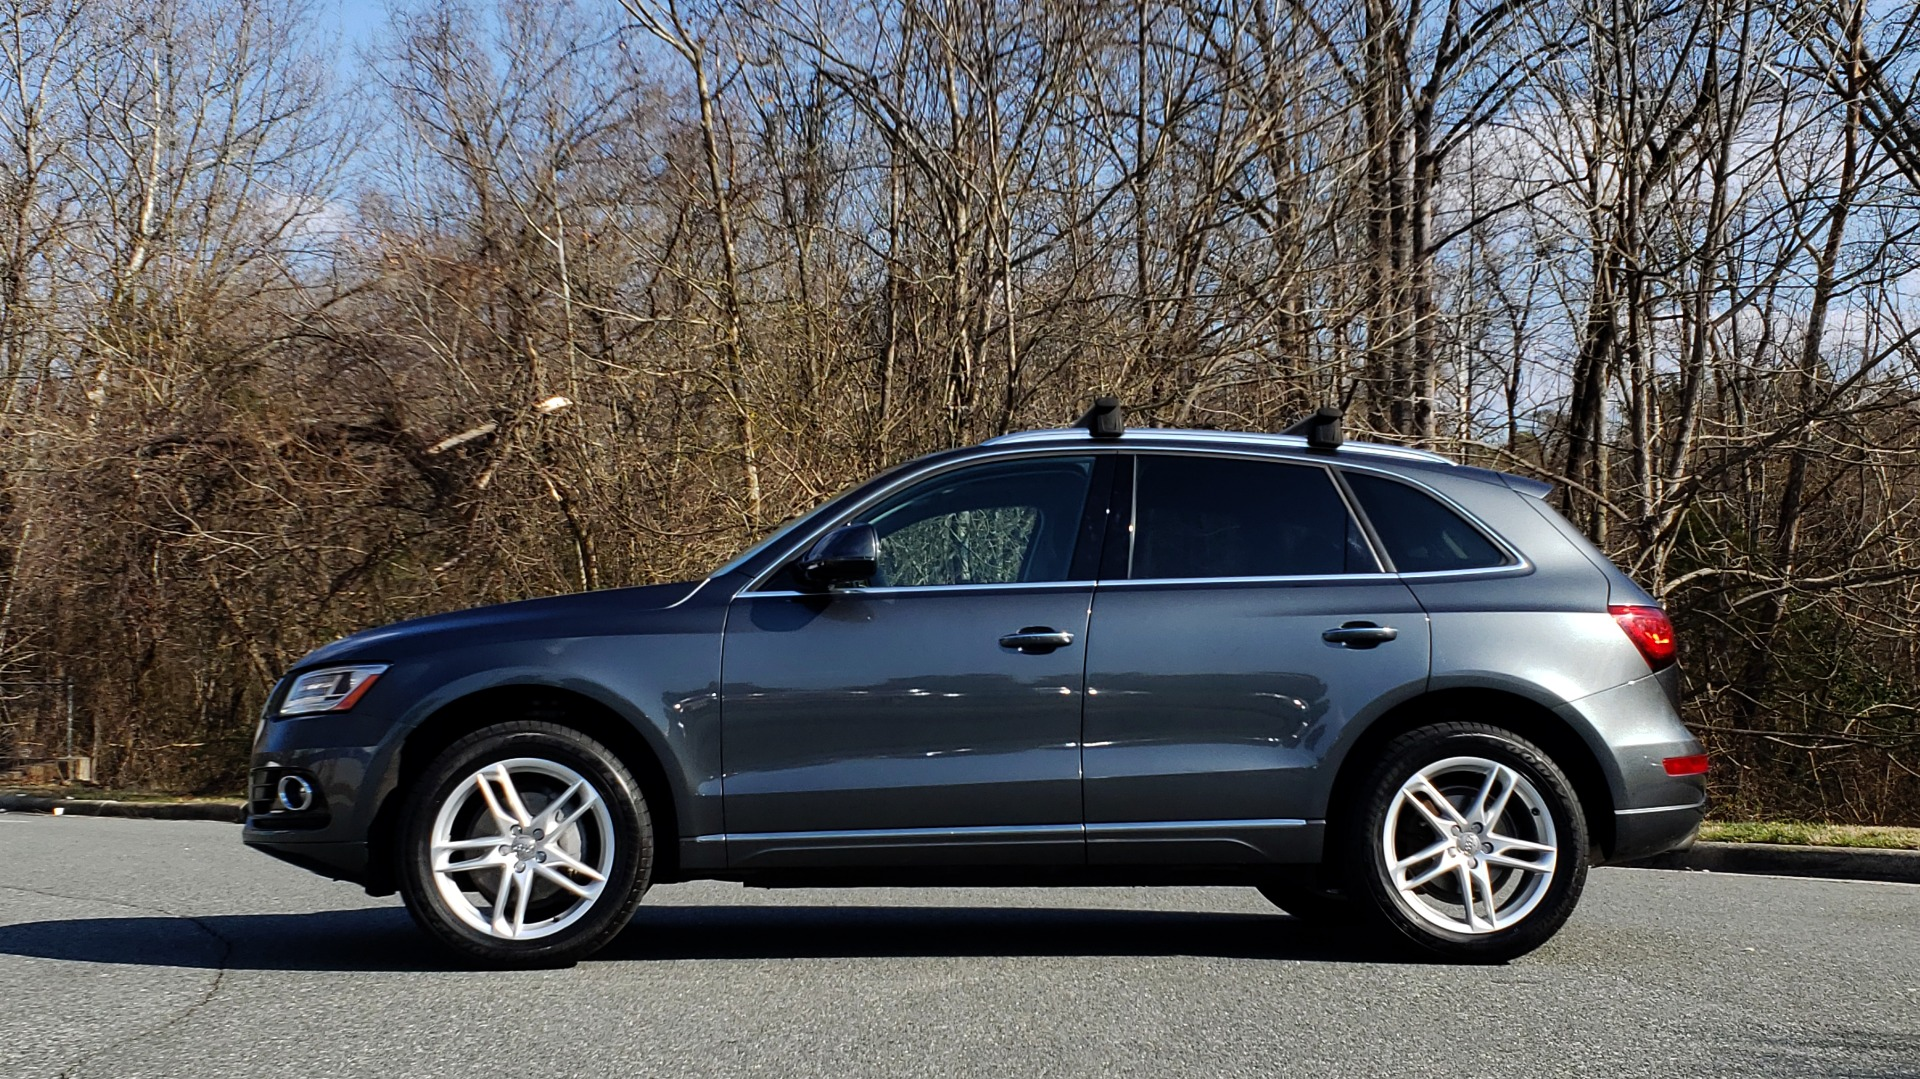 Used 2017 Audi Q5 PREMIUM PLUS / TECH / NAV / PANO / REARVIEW / B&O SND for sale Sold at Formula Imports in Charlotte NC 28227 2